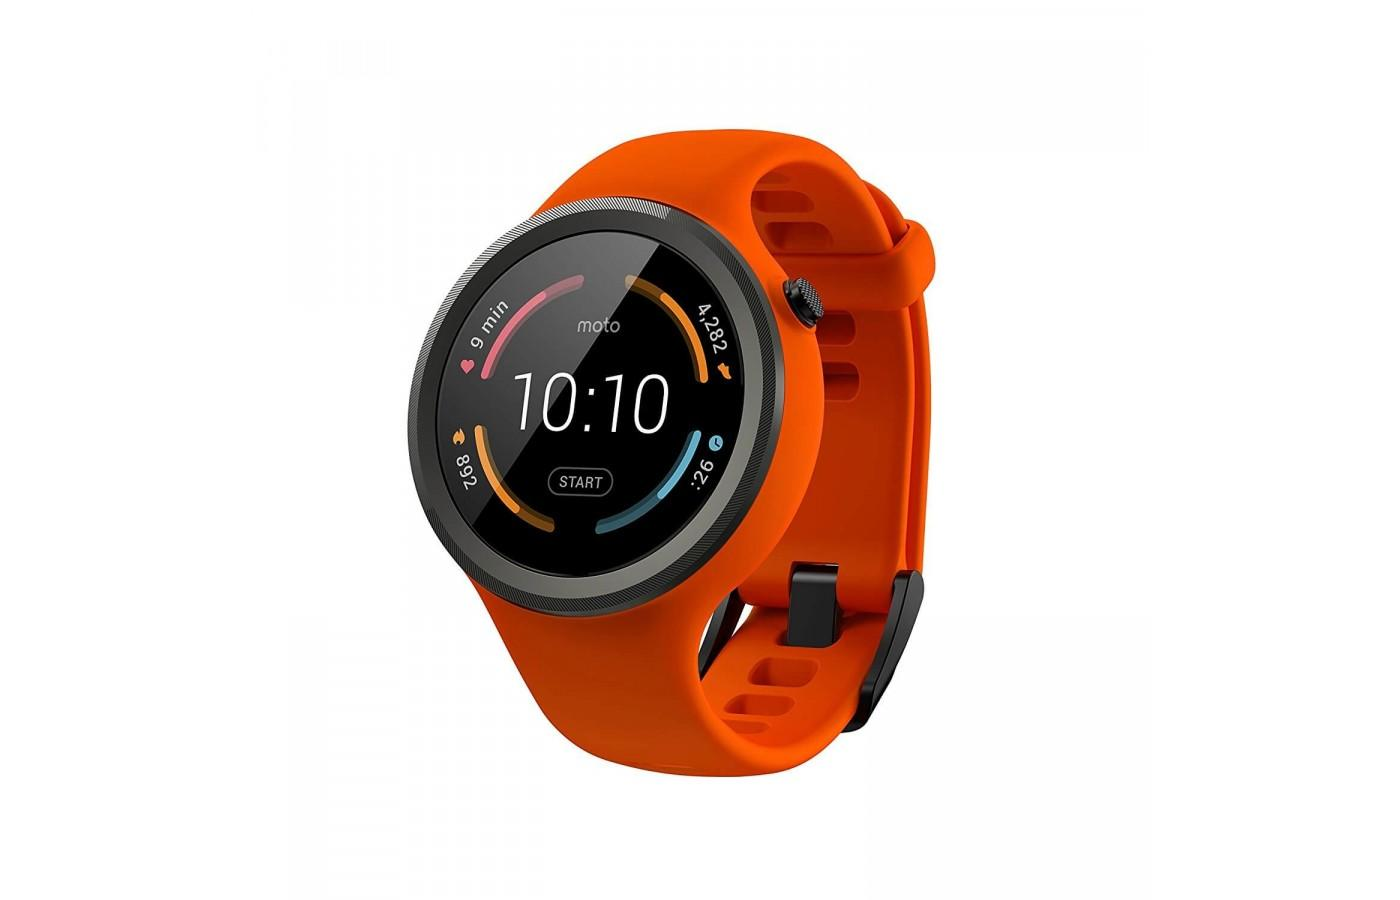 The Moto 360 Sport in flame